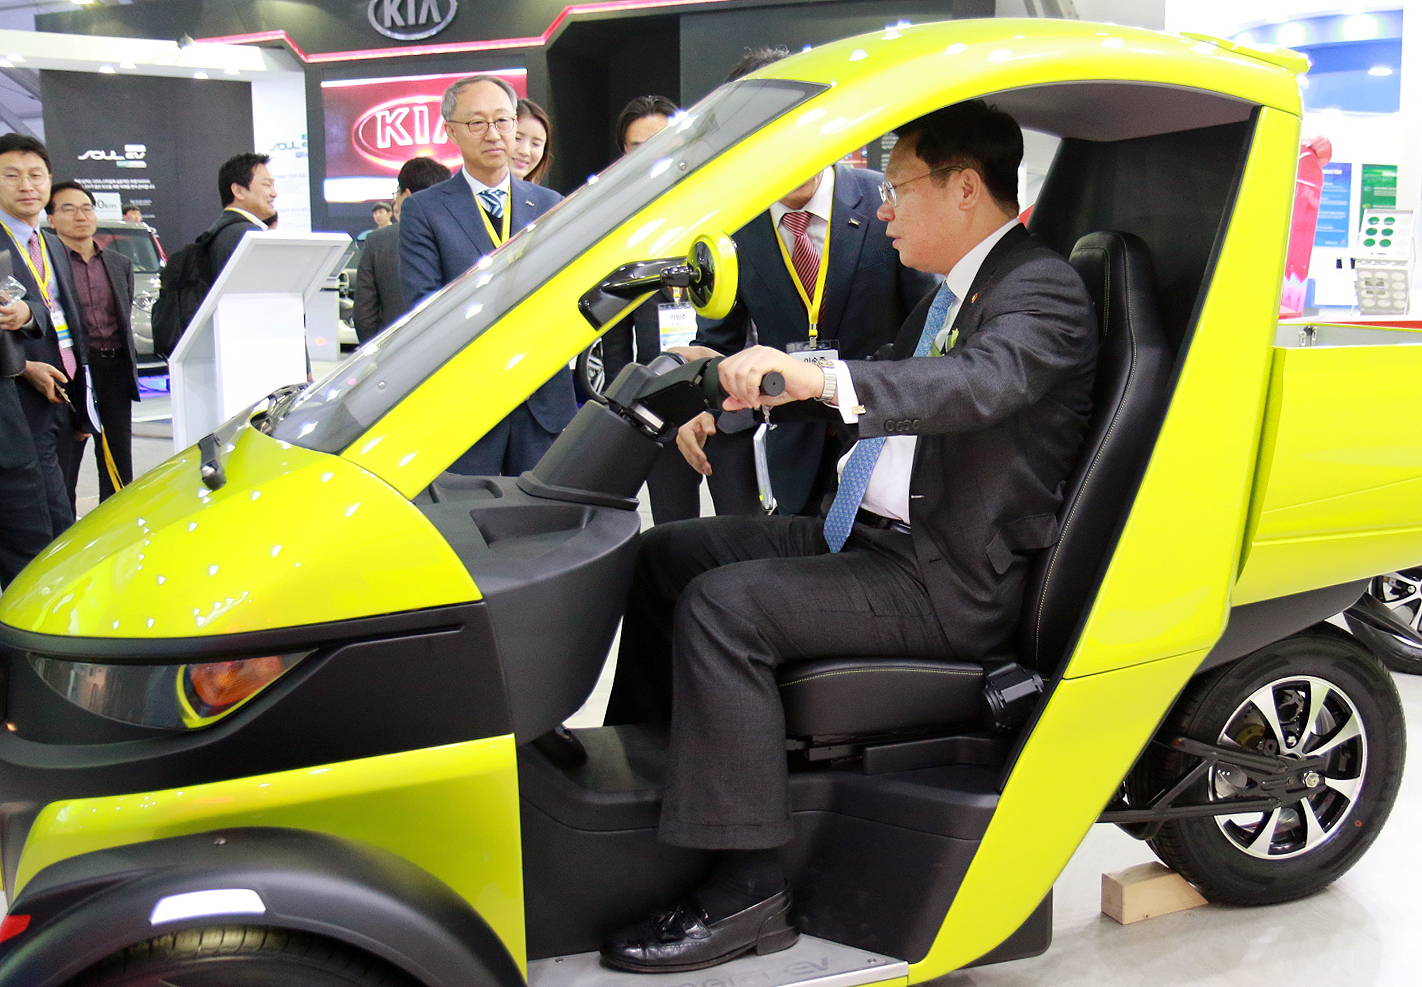 Minister Joo visits 4th International Electric Vehicle Expo